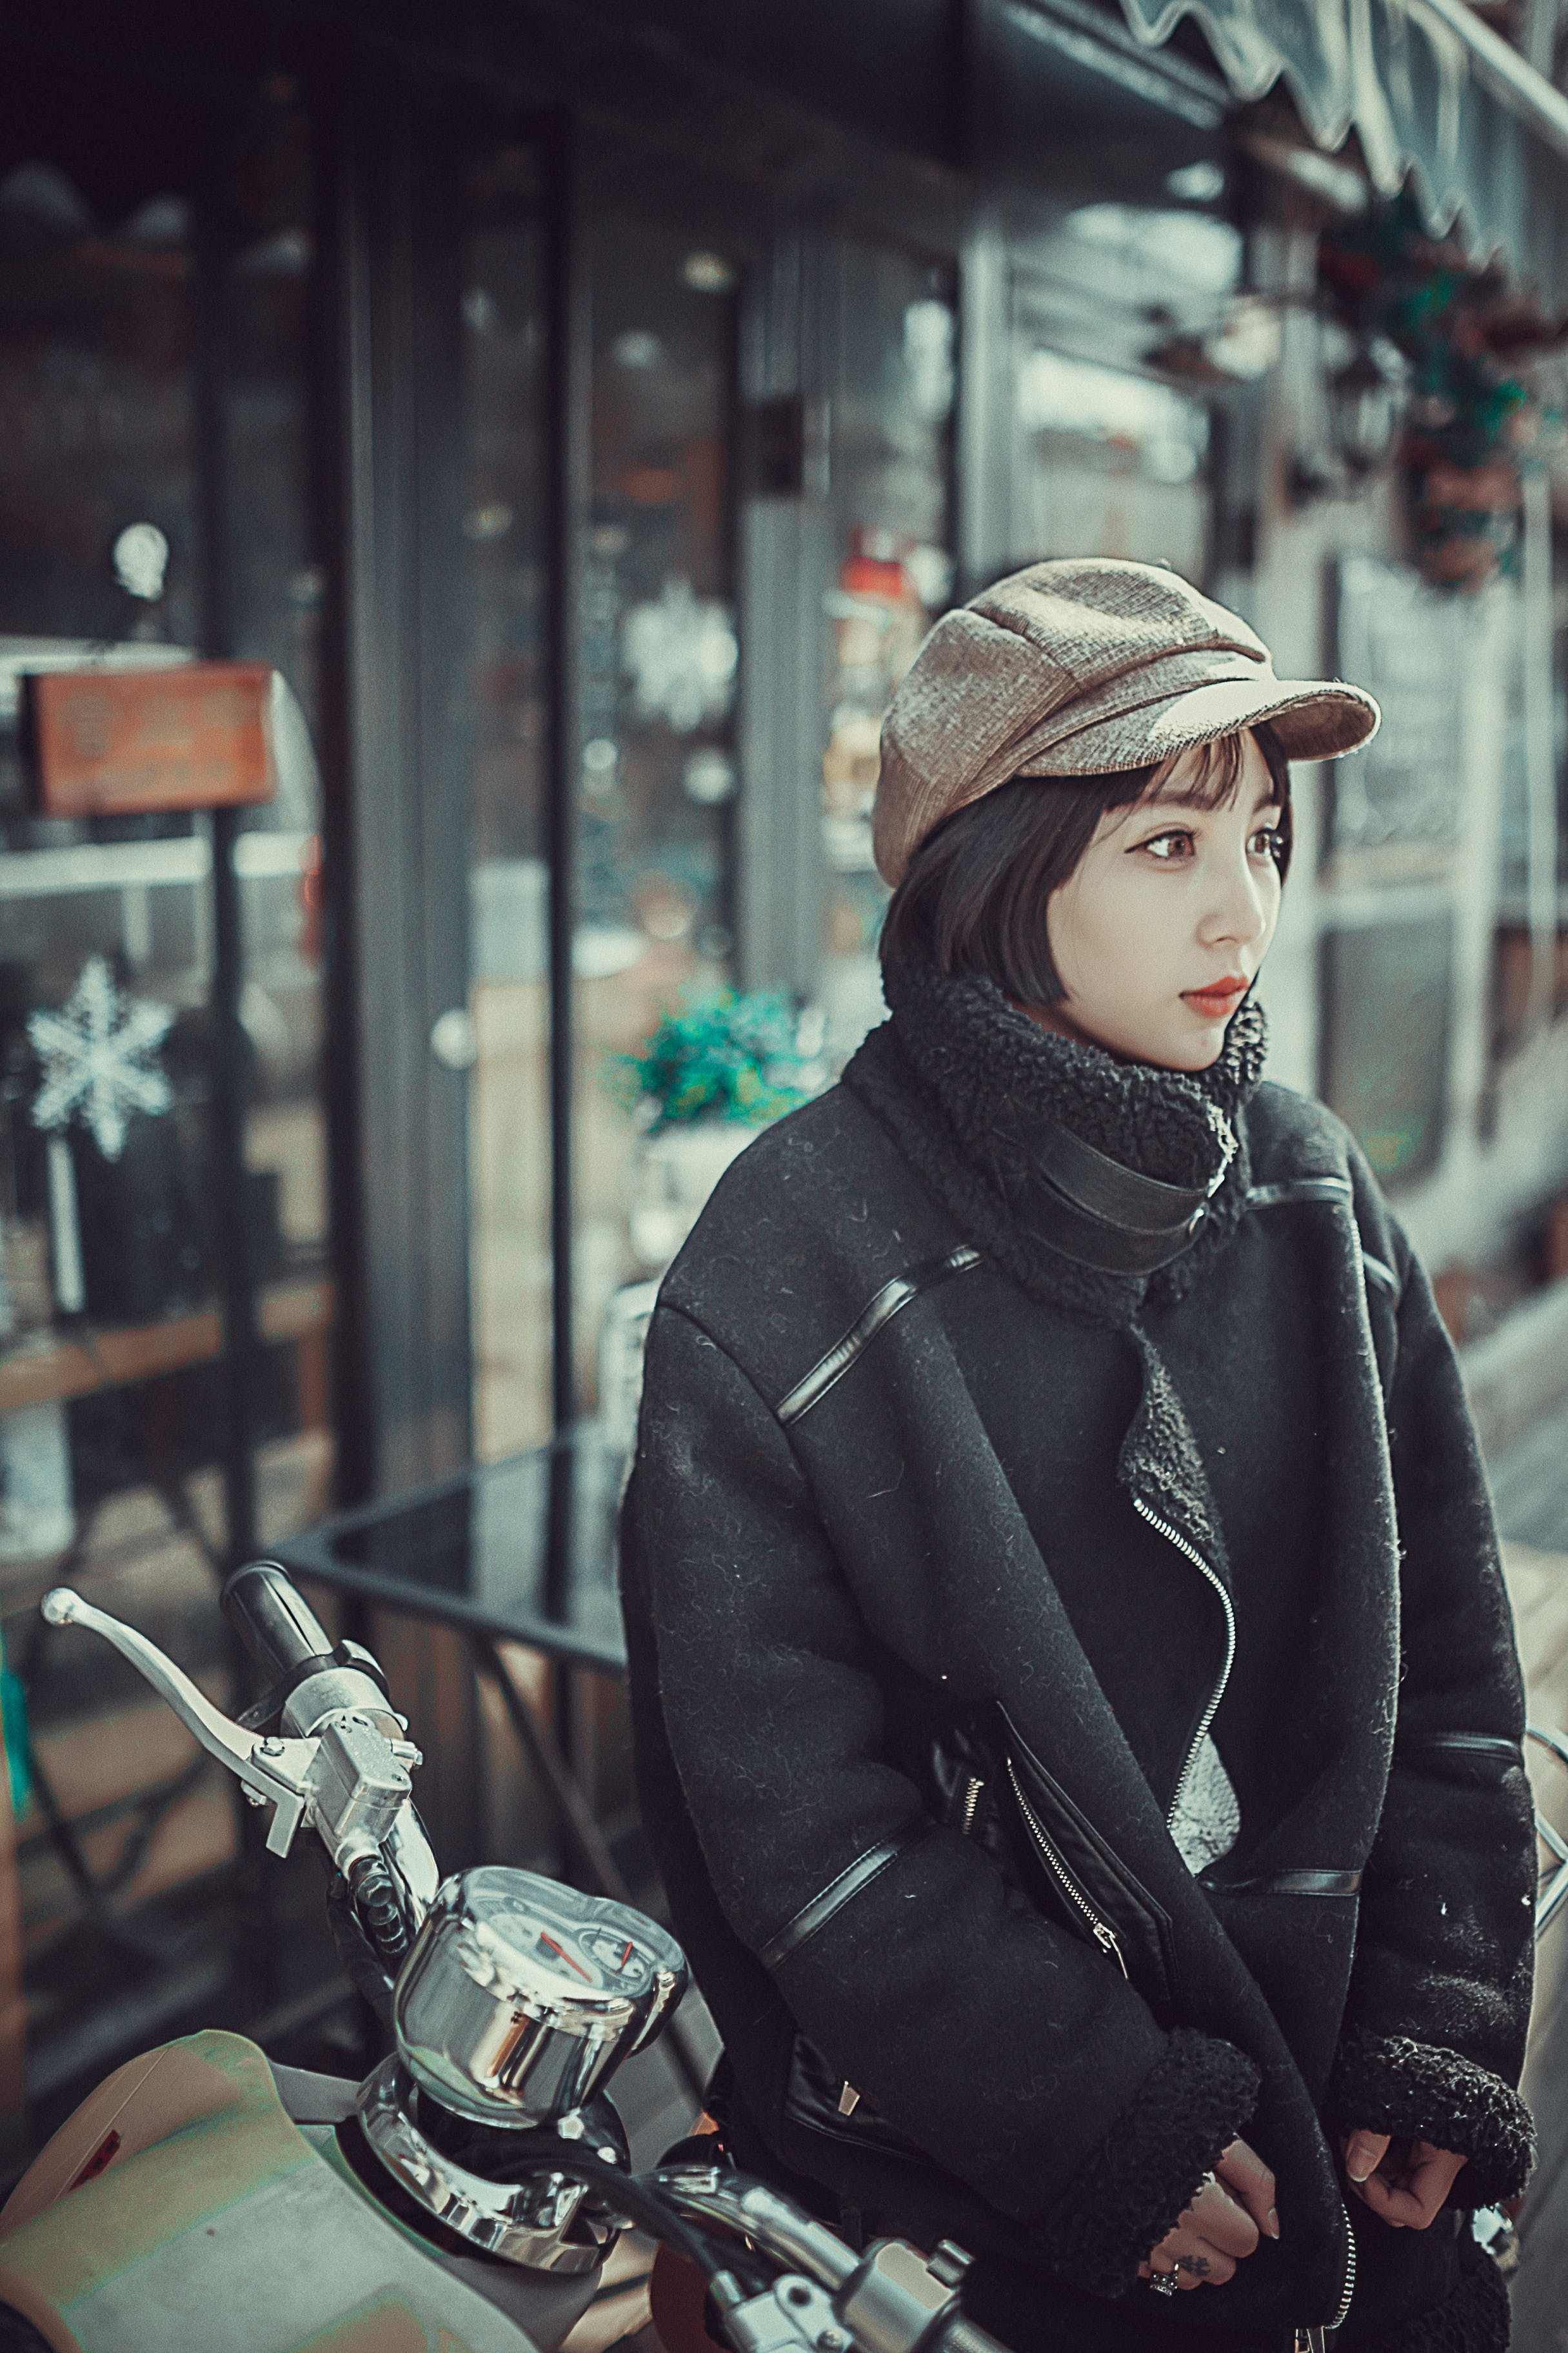 Free stock photo of cold, city, fashion, person